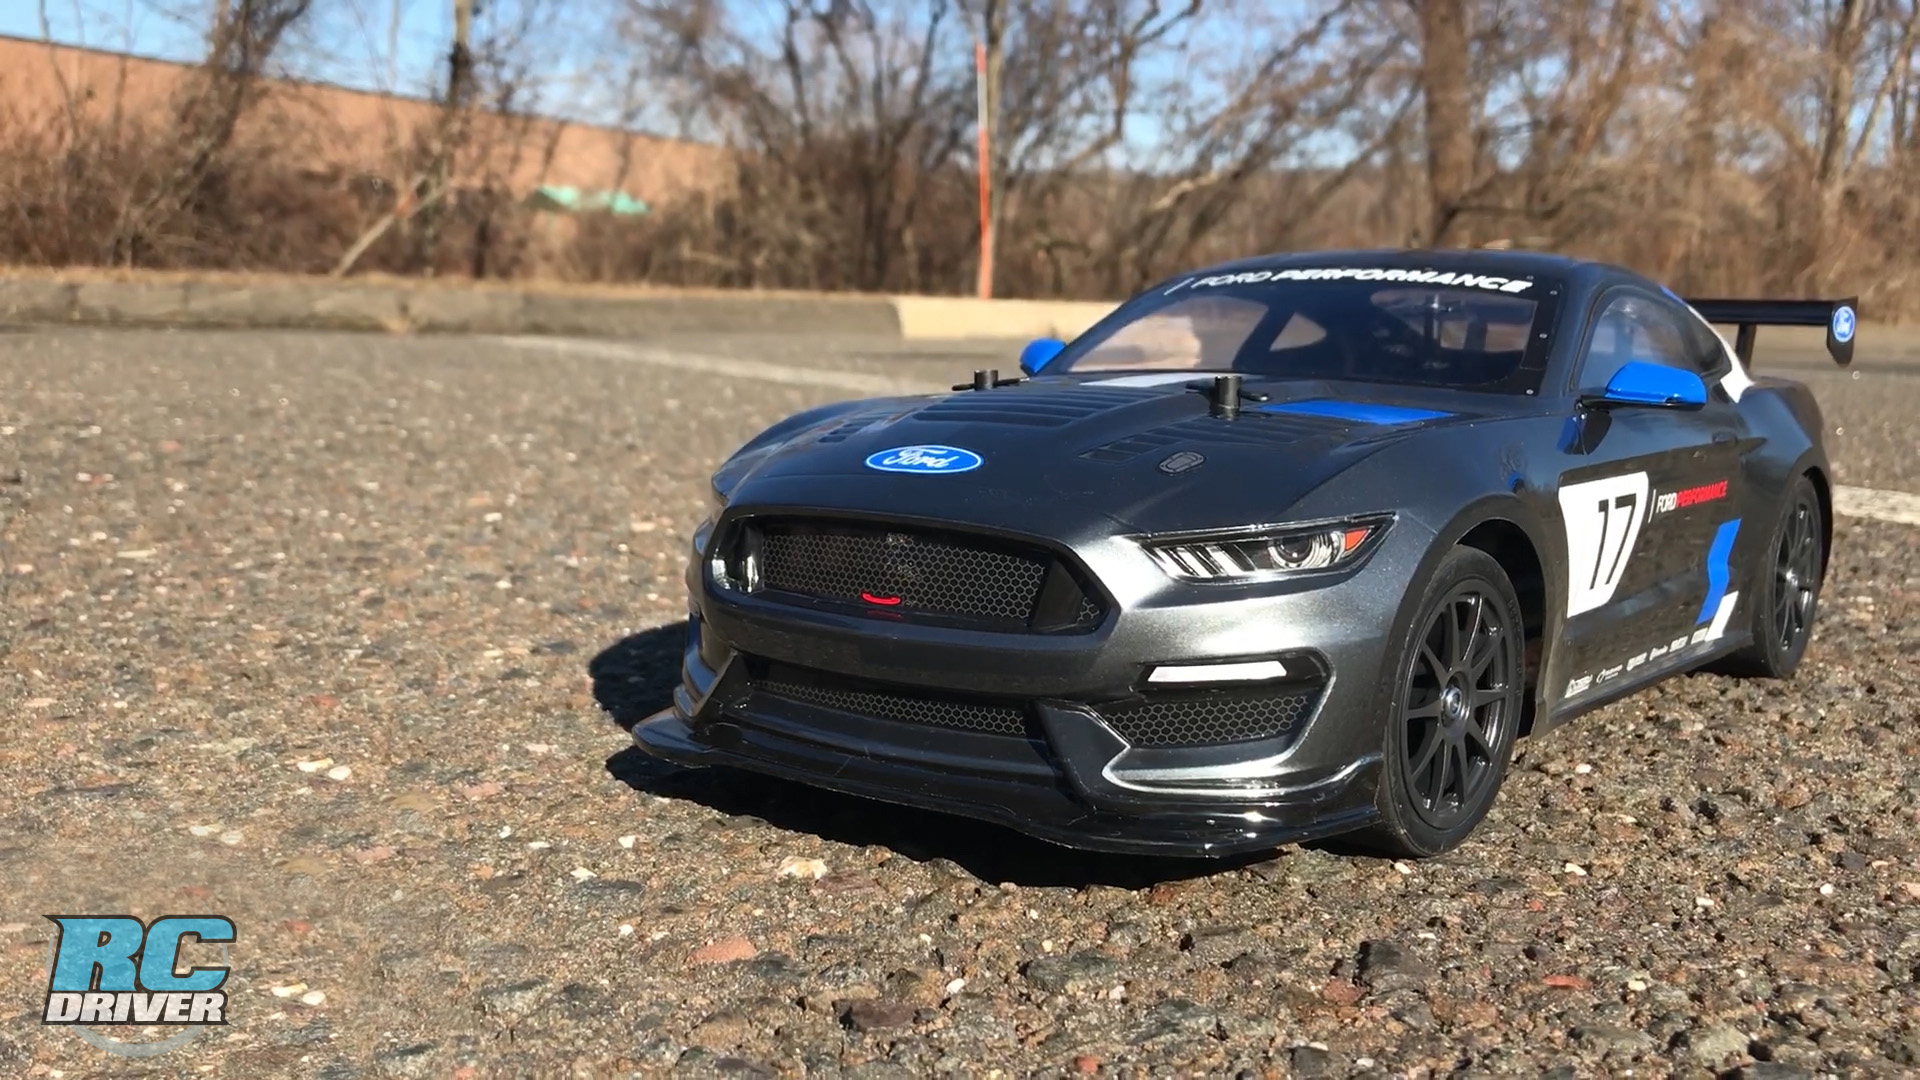 tamiya ford mustang gt4 4wd tt 02 car kit review rc driver. Black Bedroom Furniture Sets. Home Design Ideas